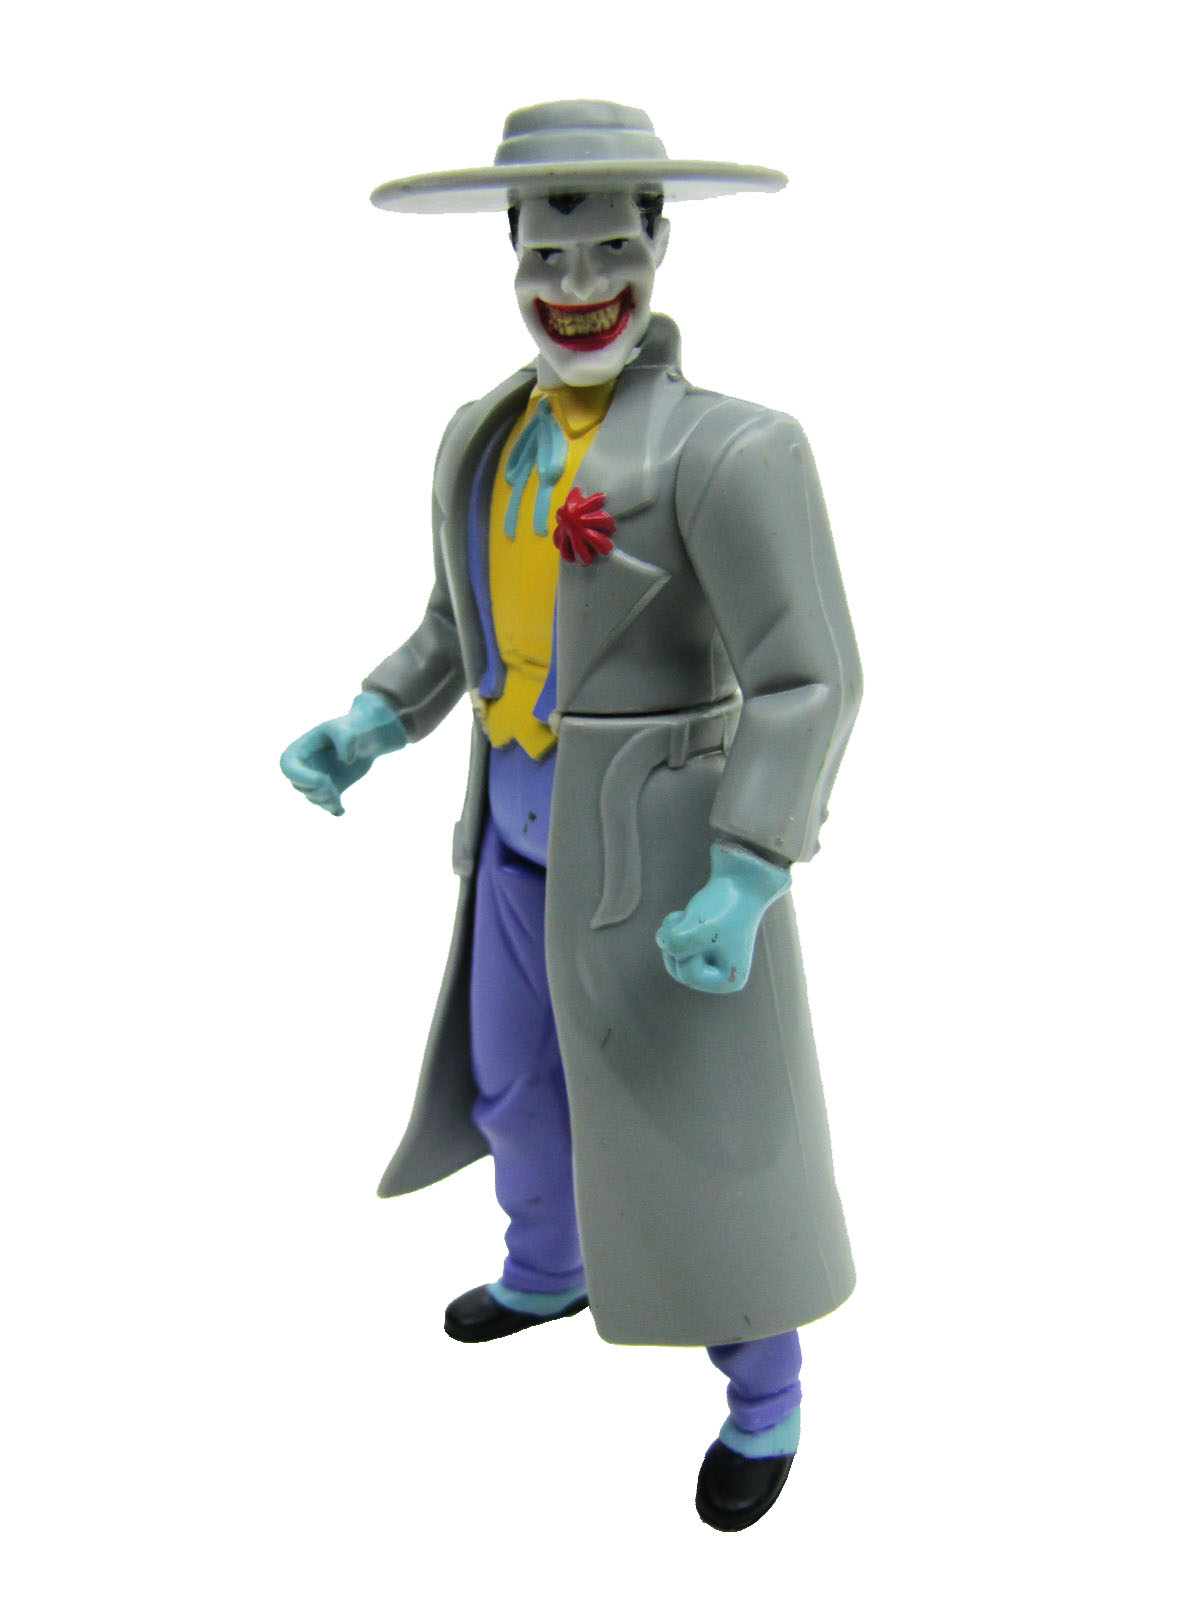 Batman The Animated Series The Joker with Trench Coat Complete